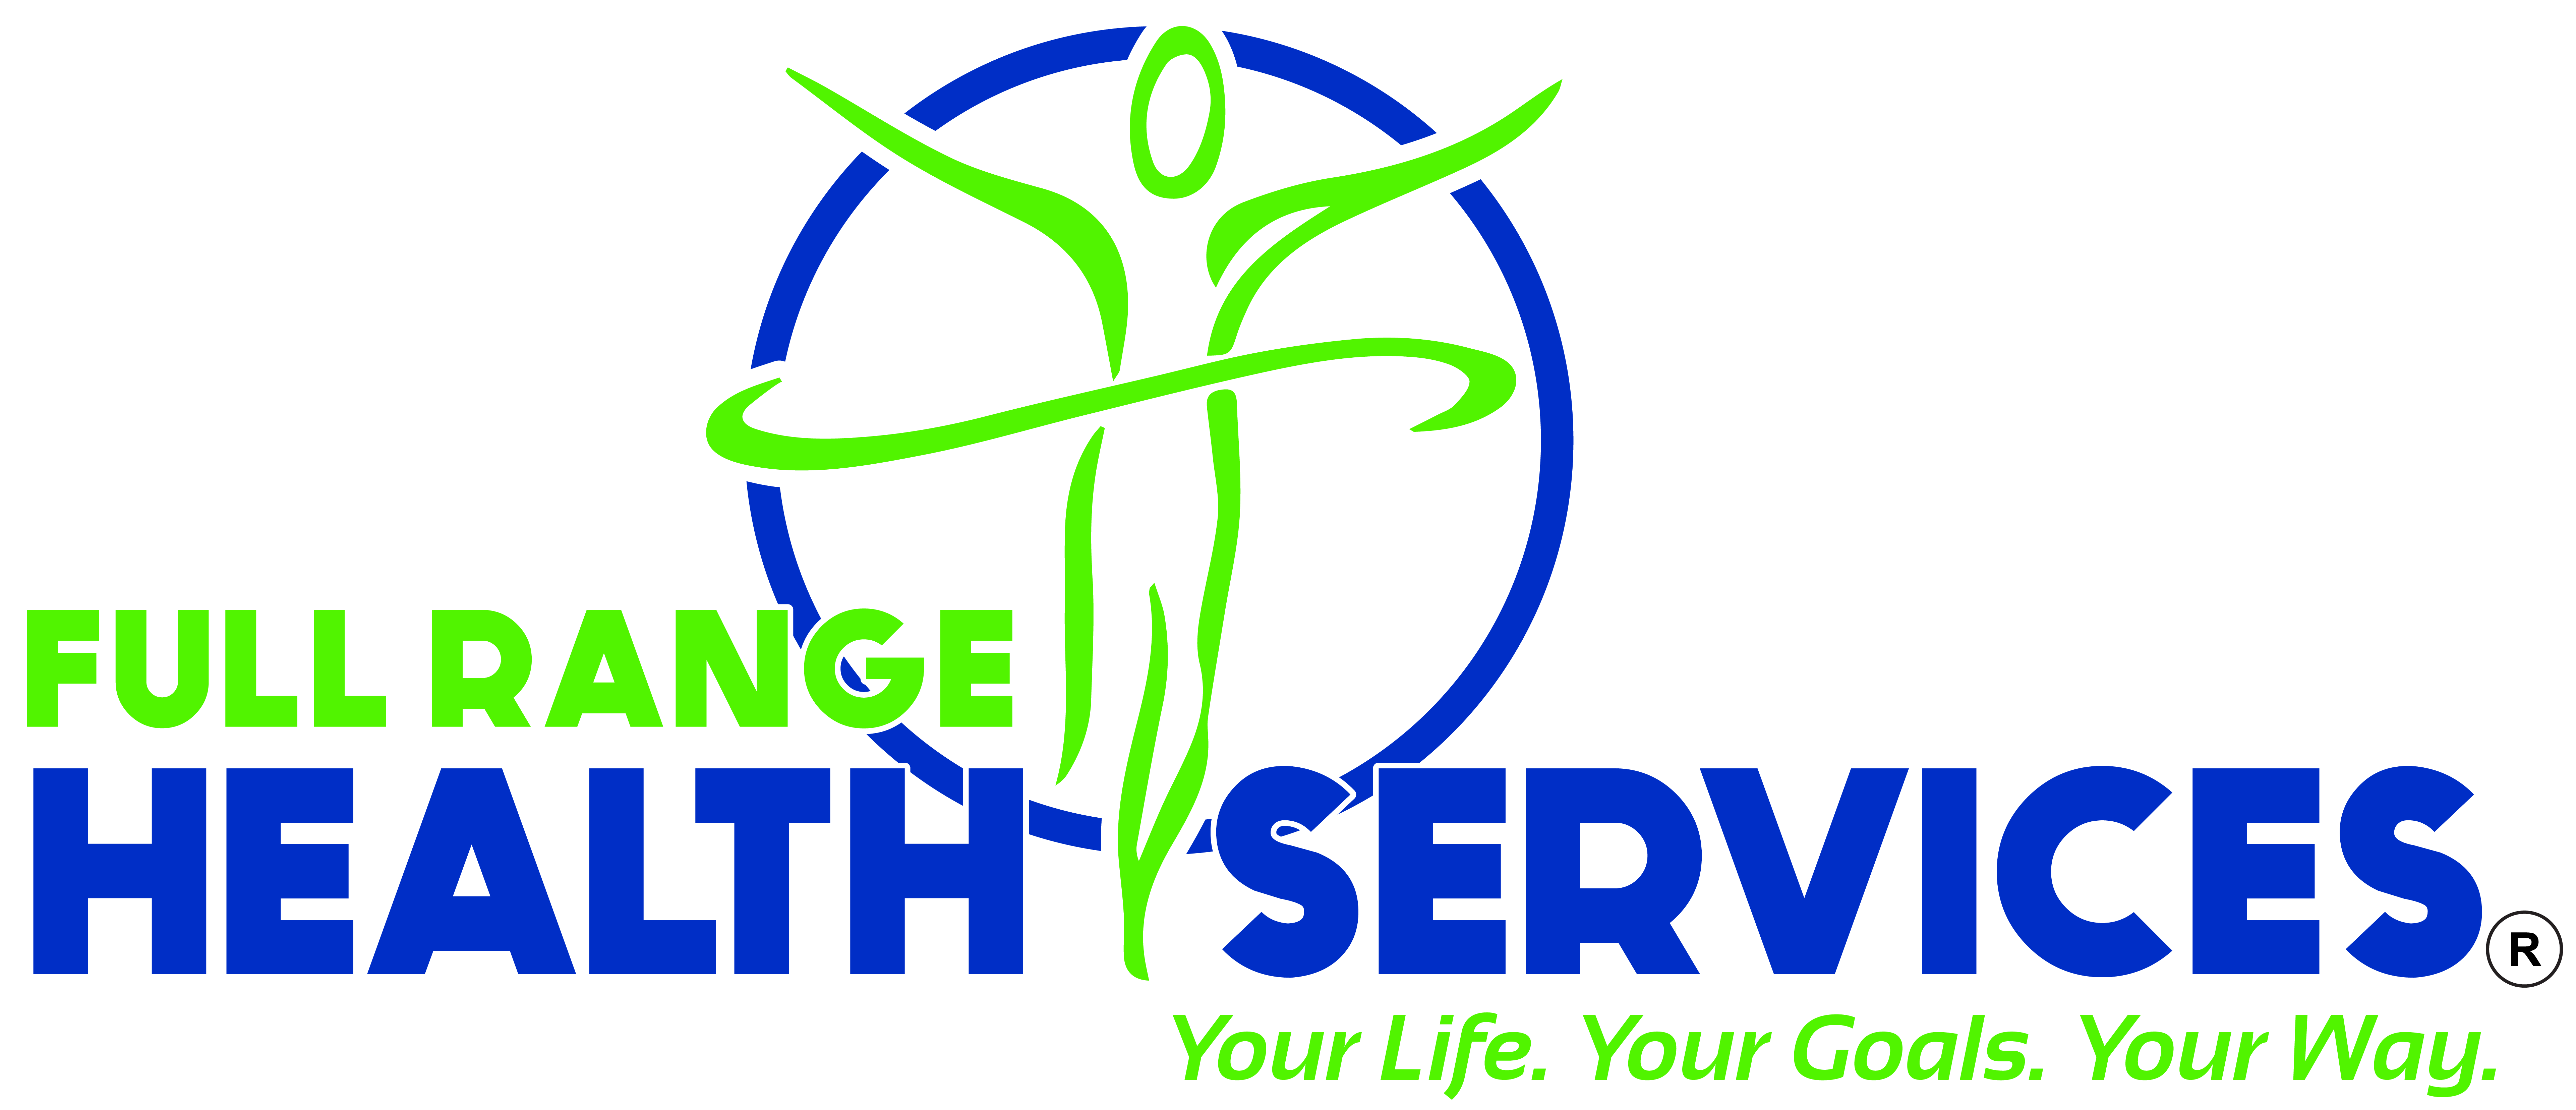 Full Range Health Services- Royal